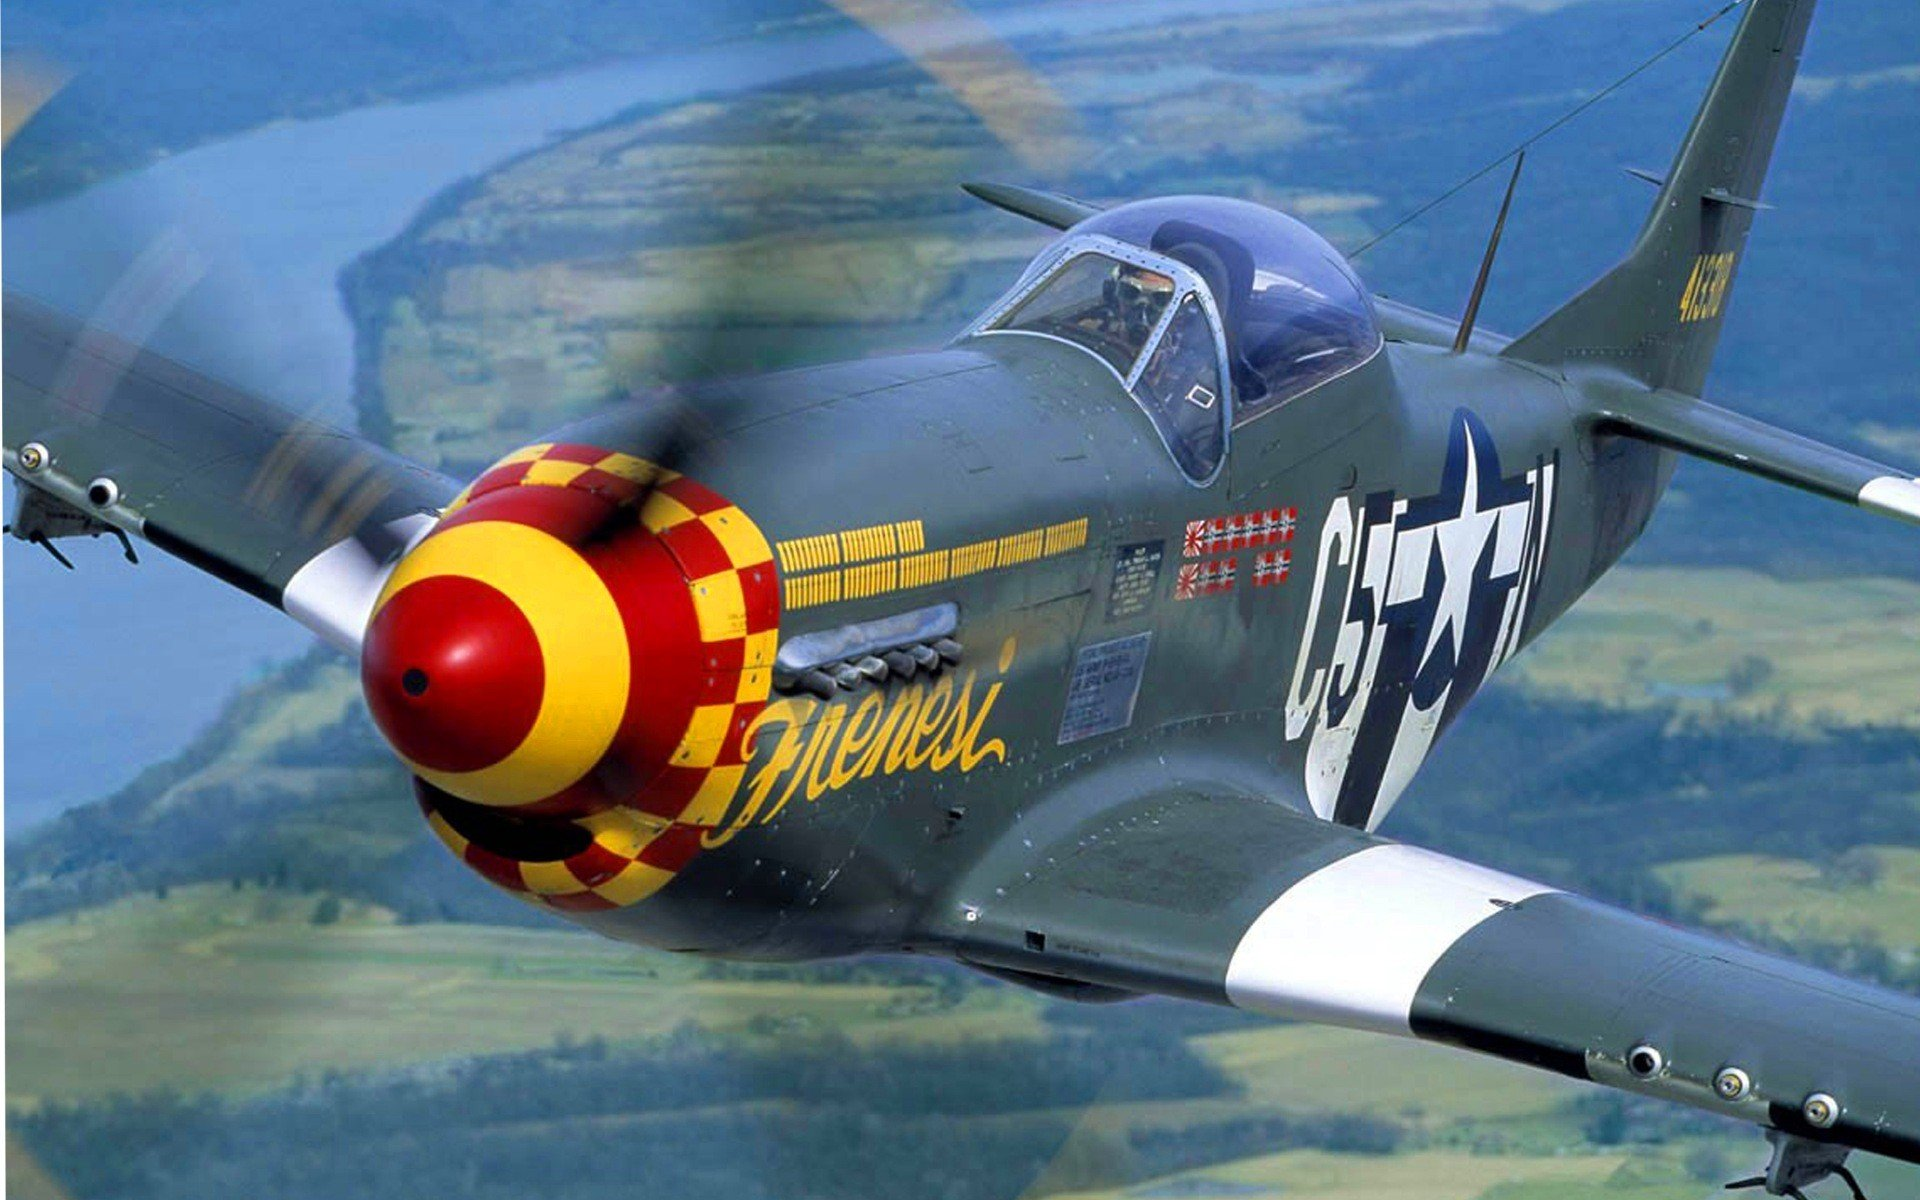 aircraft P 51 Mustang wallpaper background 1920x1200